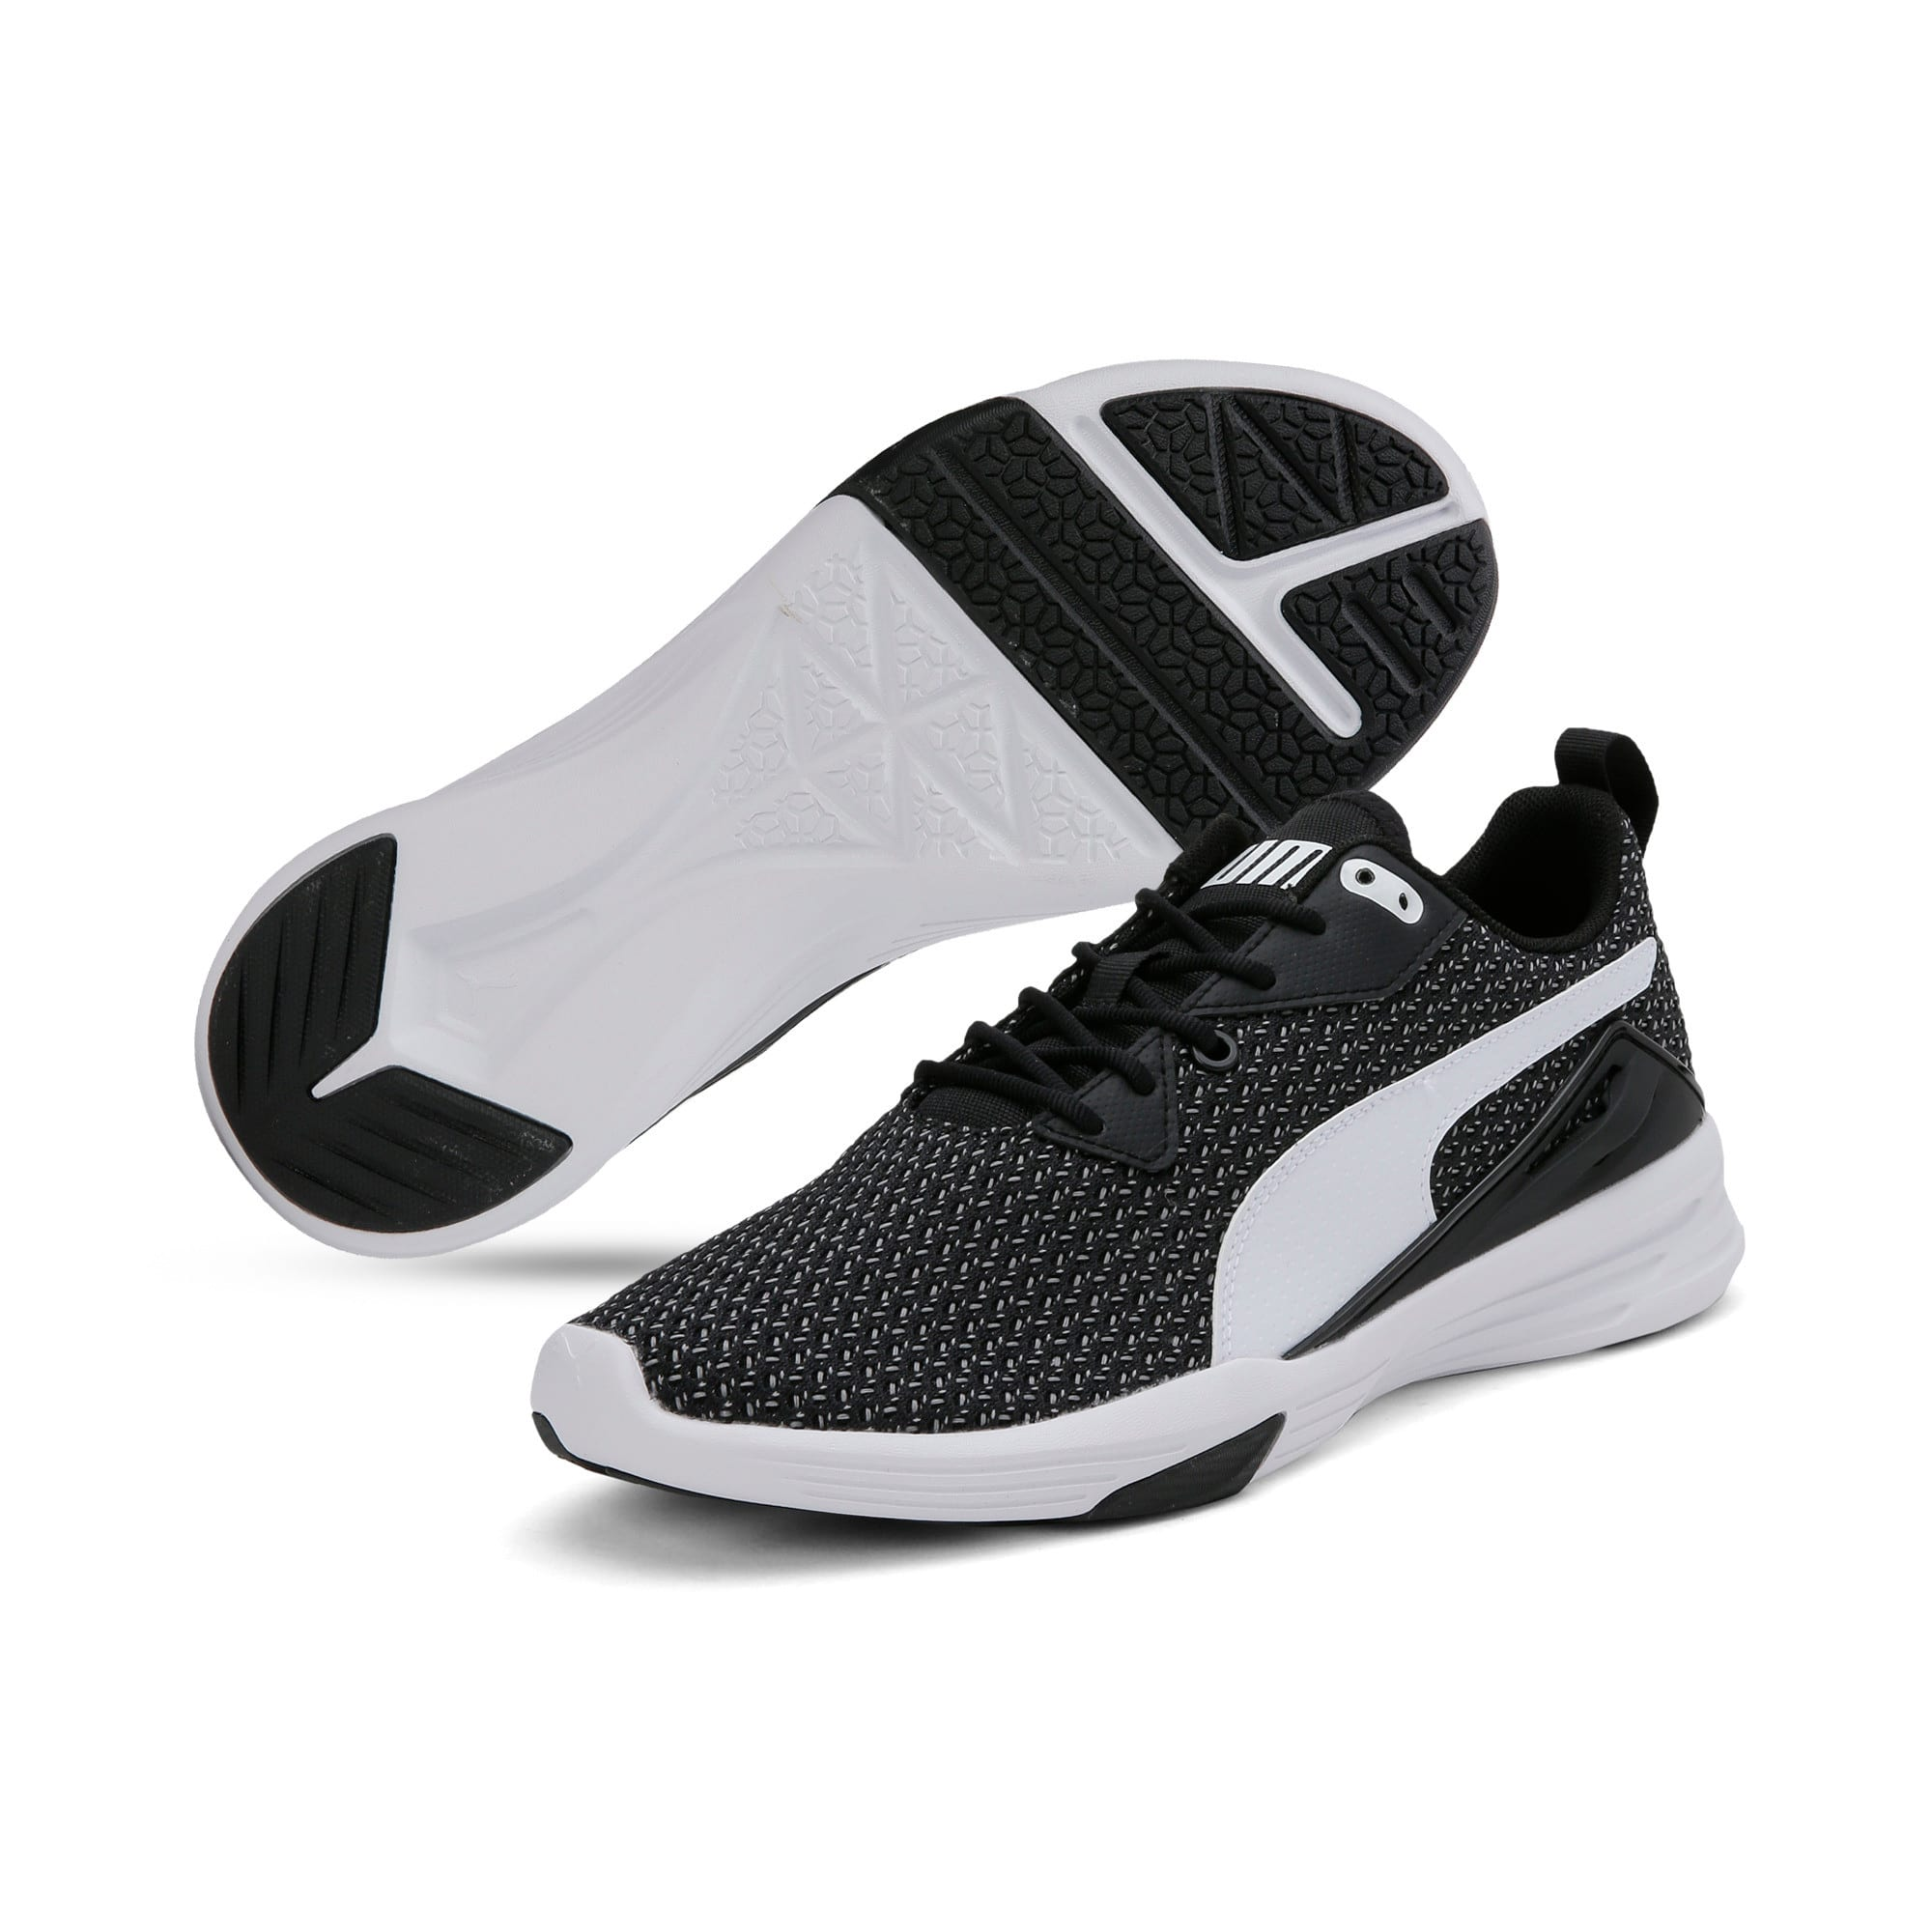 Thumbnail 4 of Aura XT Men's Trainers, Puma Black-Puma White, medium-IND